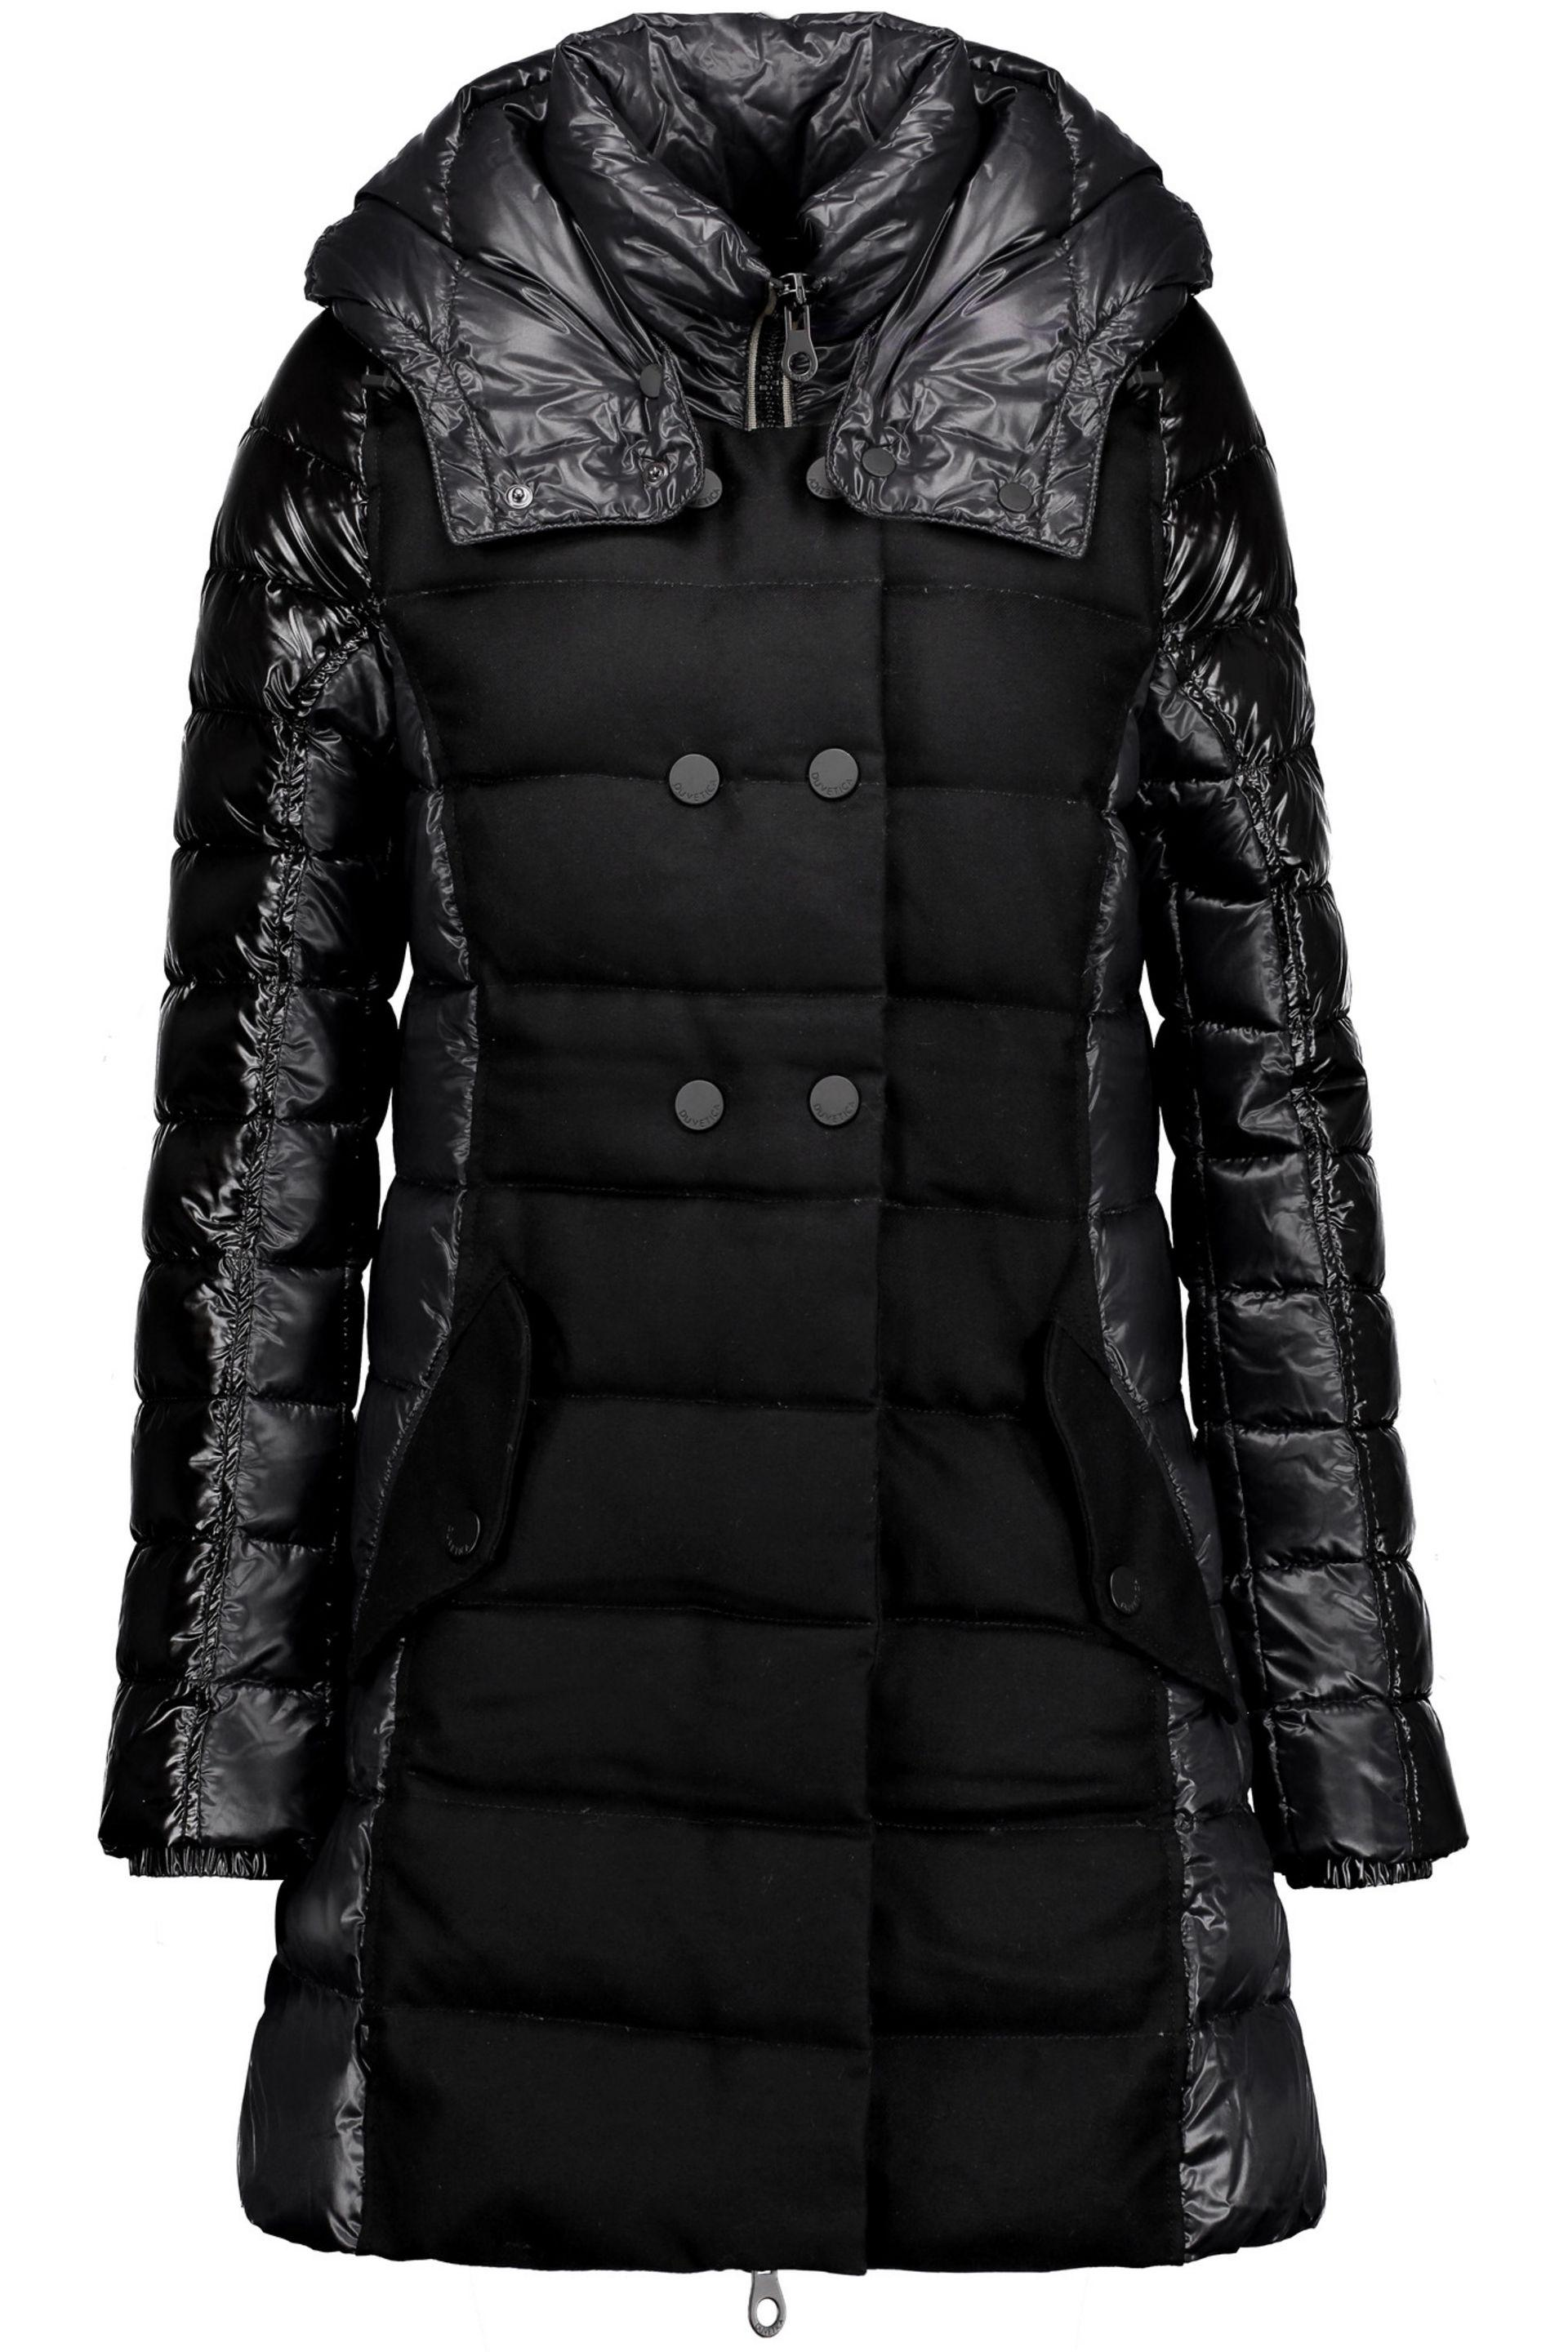 Quilted Lyst Coat Callipatira Twill Shell Duvetica Down Xhxtw Hooded And 5wZ5qCX